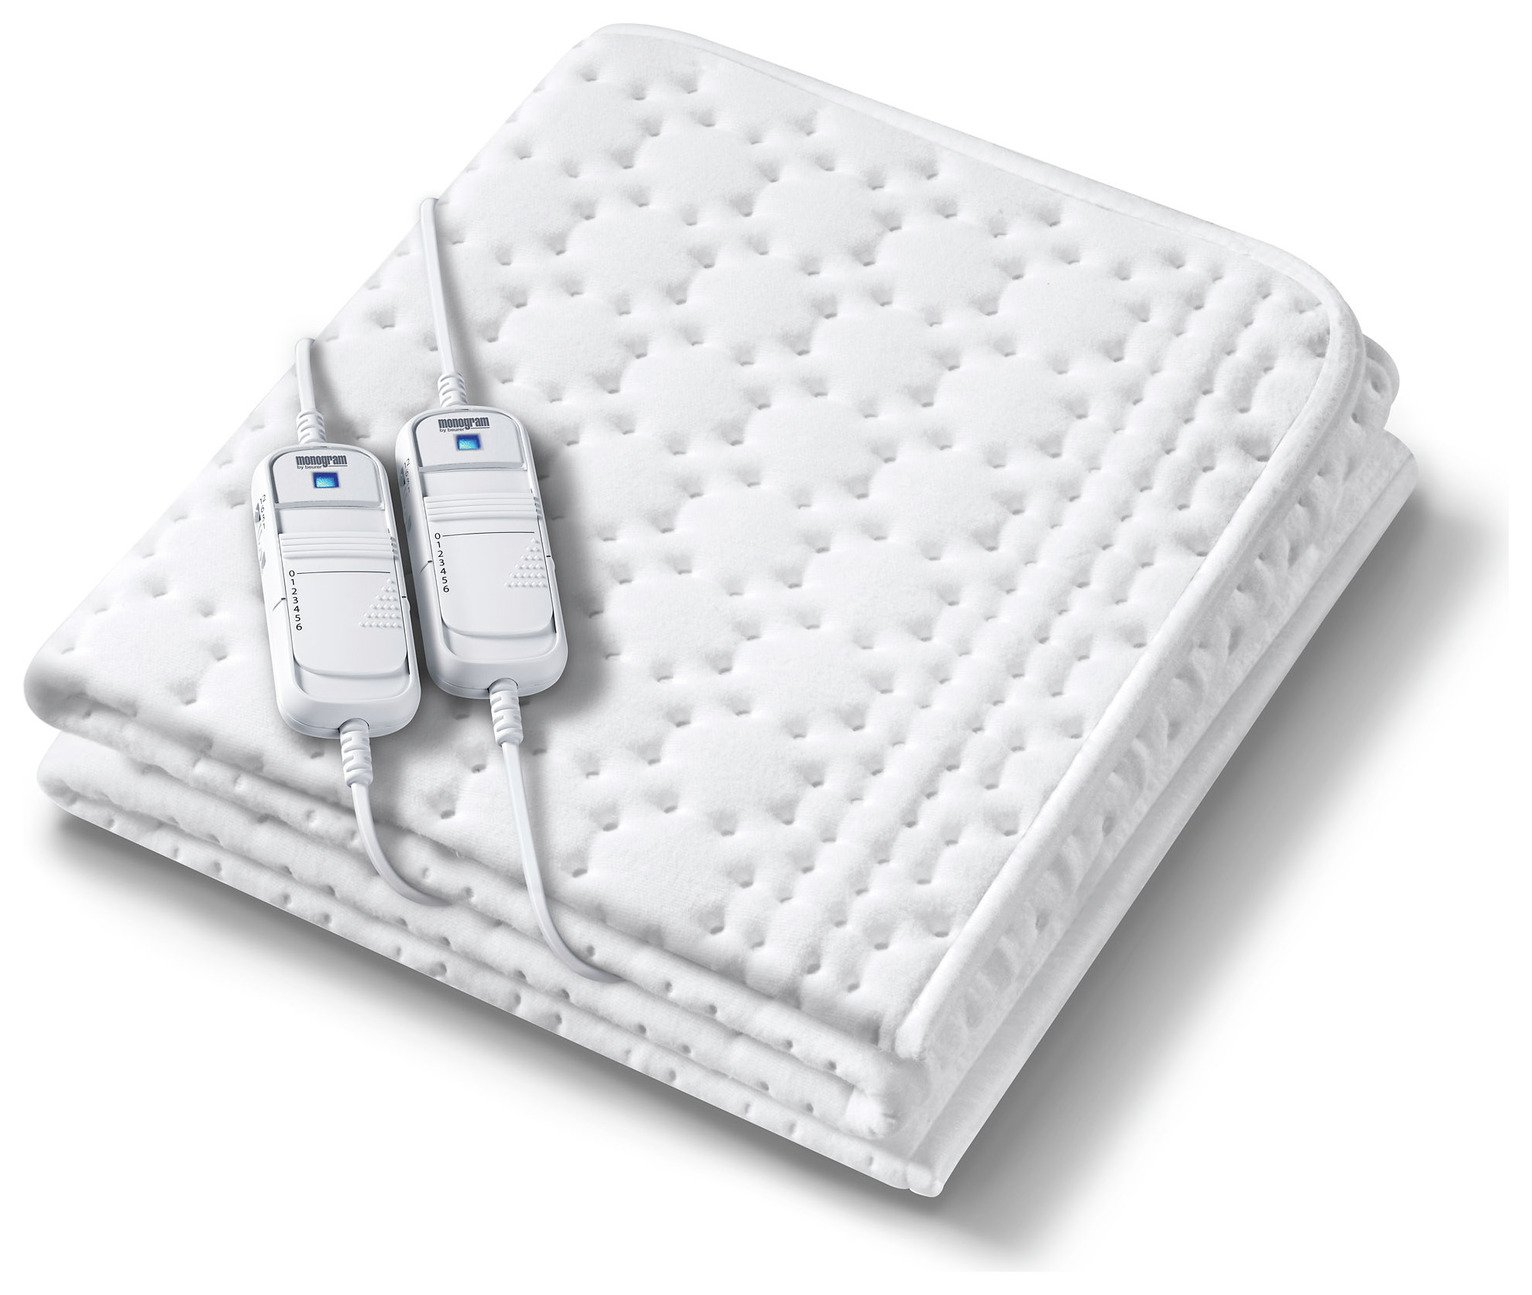 Image of Beurer Allergyfree Dual Control Heated Blanket - Double